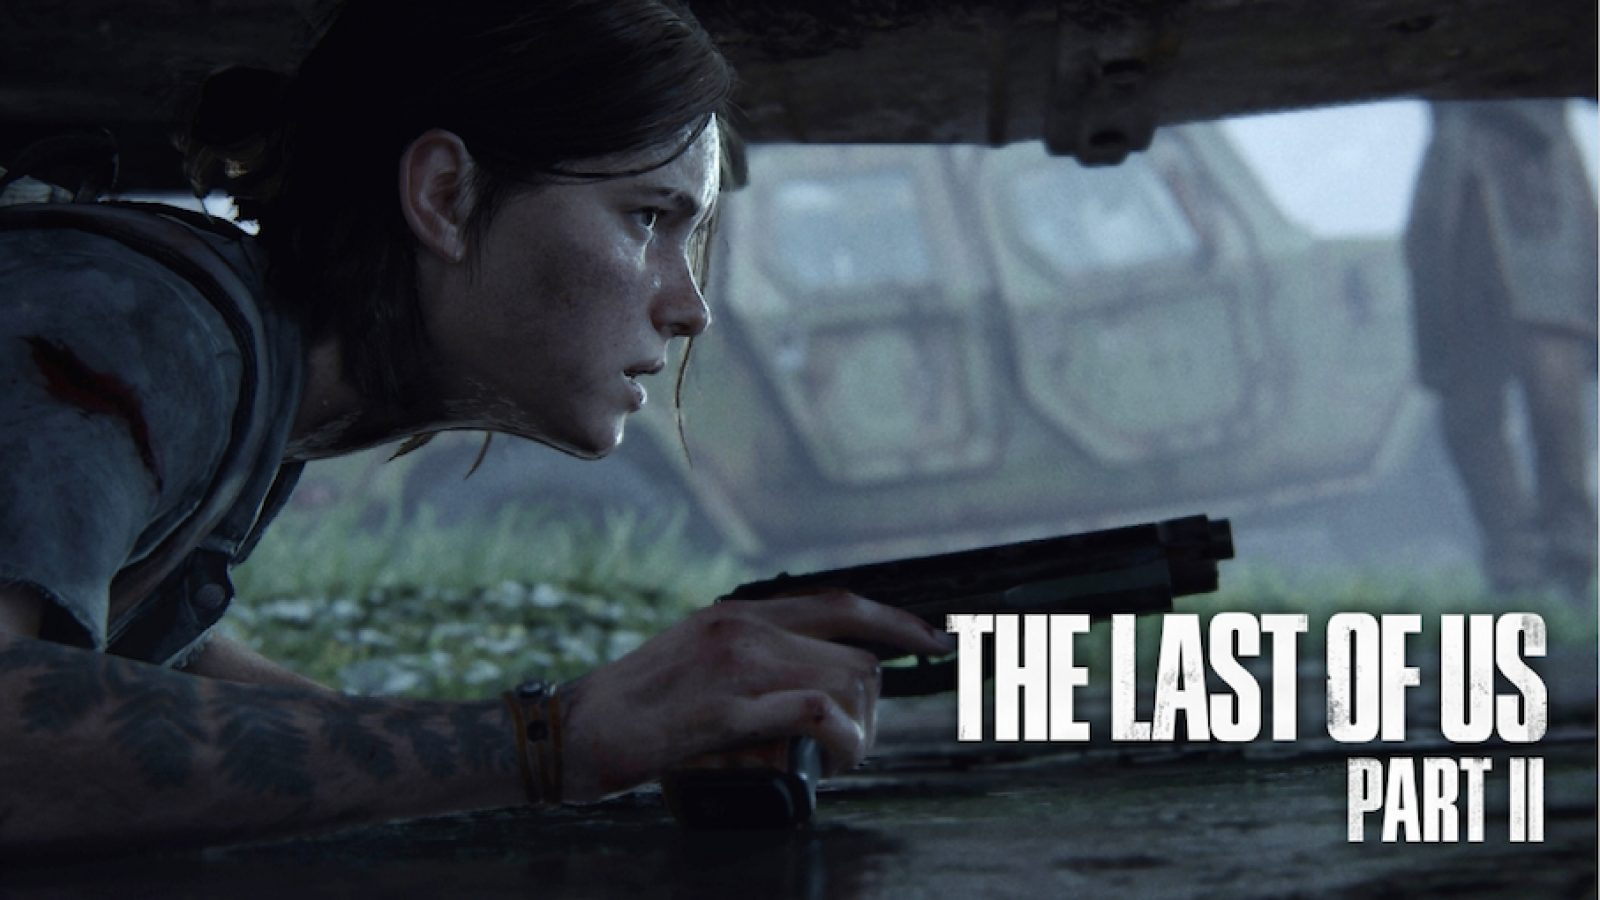 The Last of Us 2 Apk Android Mobile Version Full Free Game Download -  LadGeek